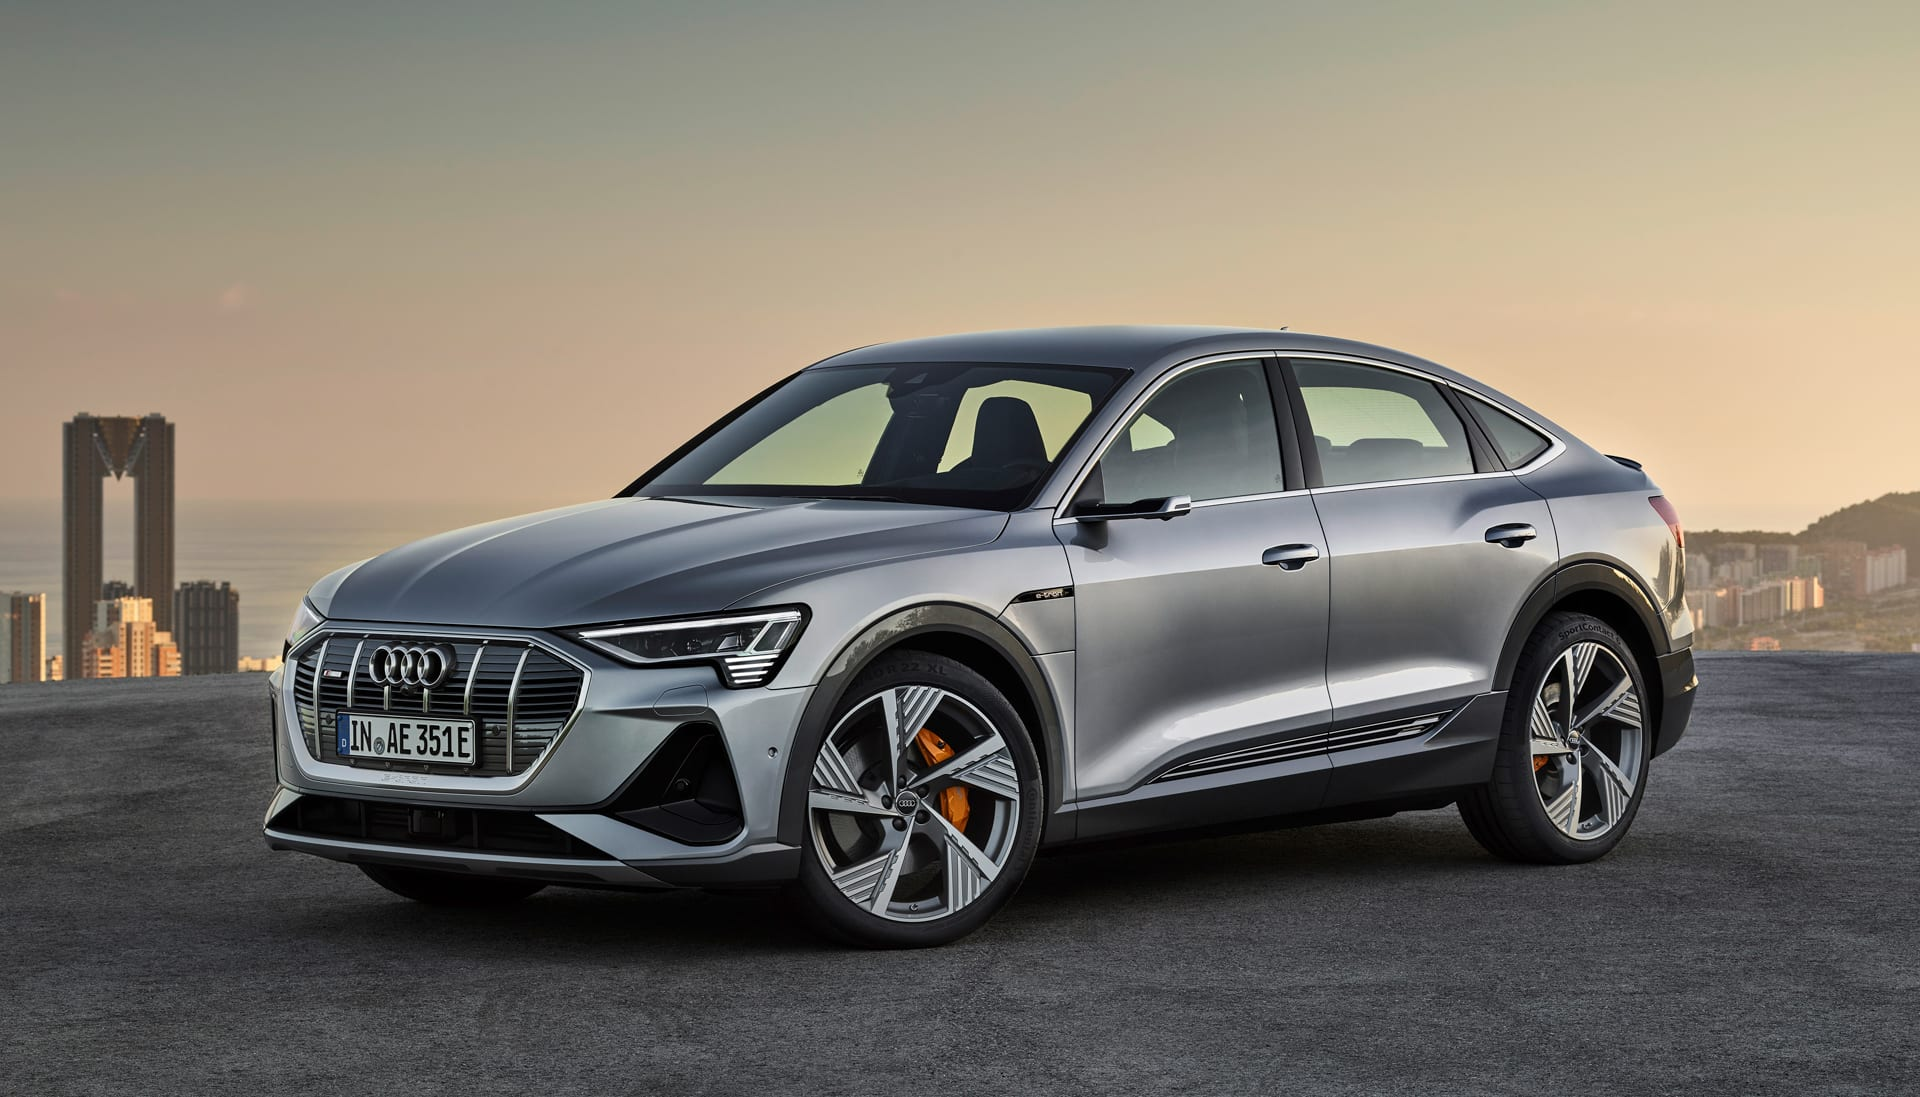 Audi's E-Tron Sportback adds style and range to the line